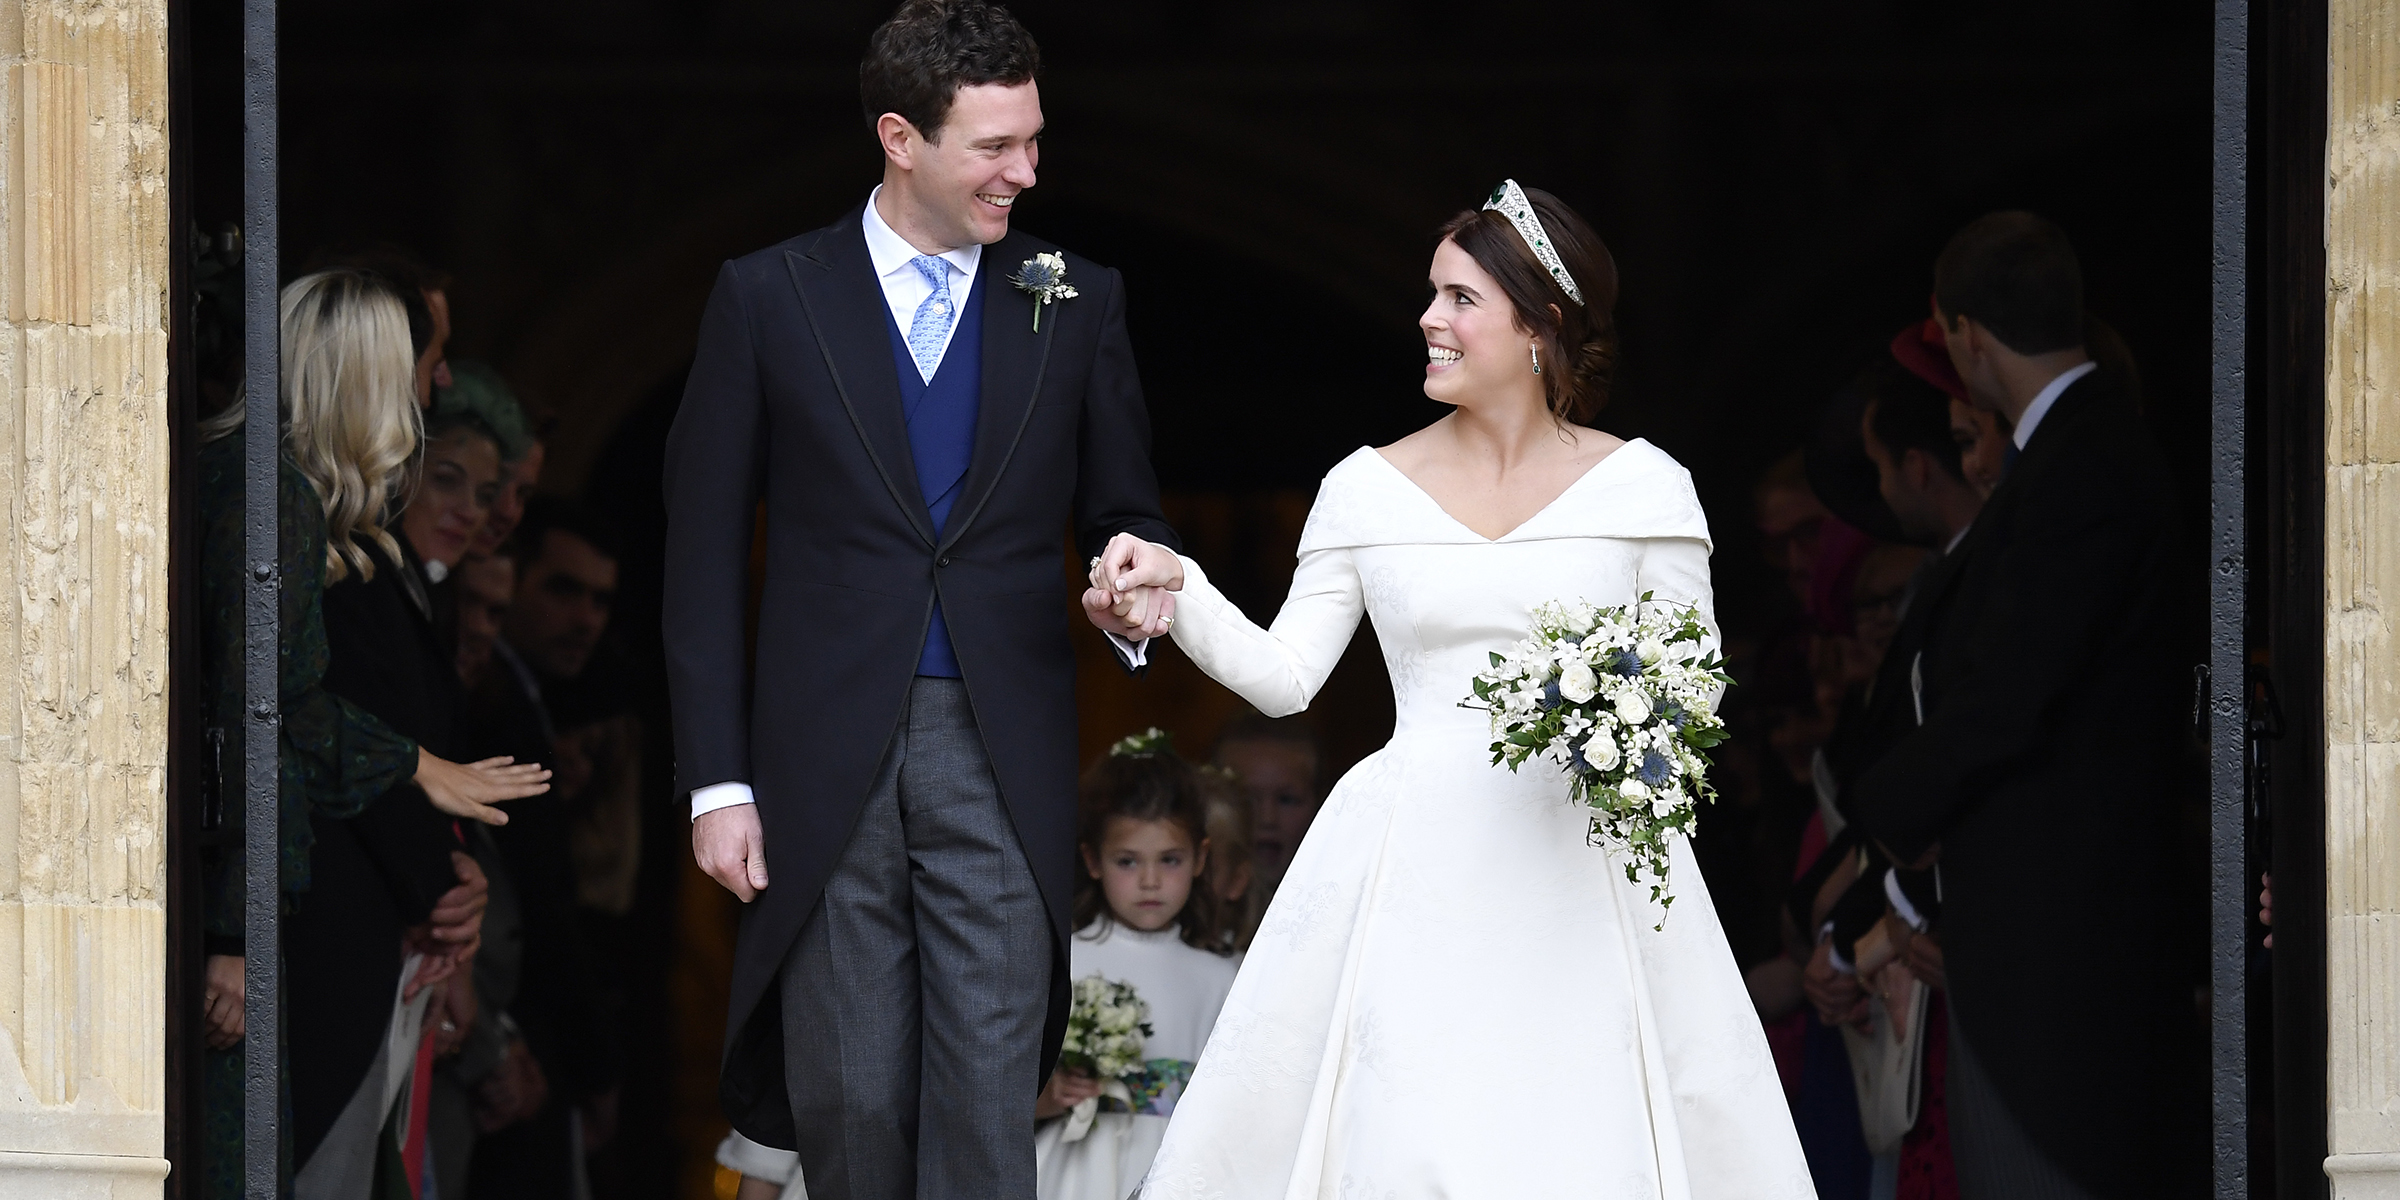 Princess Eugenie Wedding.Princess Eugenie S Royal Wedding Dress Shows Off Scoliosis Back